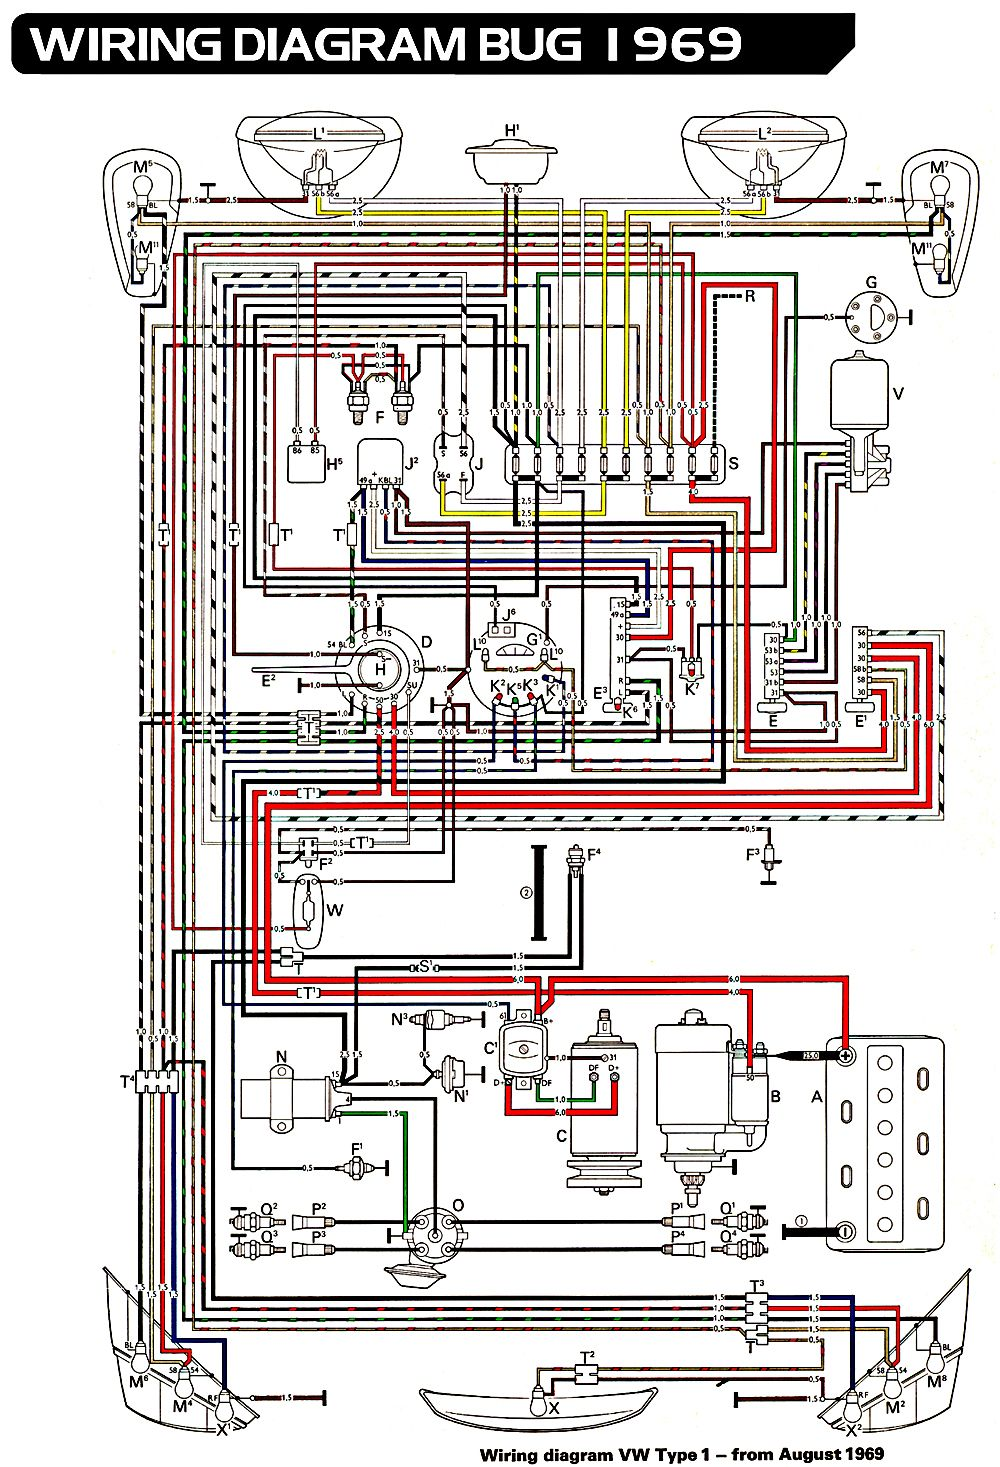 6d75c15875479254f26a32a8499d9044 volkswagen beetle wiring diagram 1966 vw beetle wiring vw wiring diagrams at webbmarketing.co